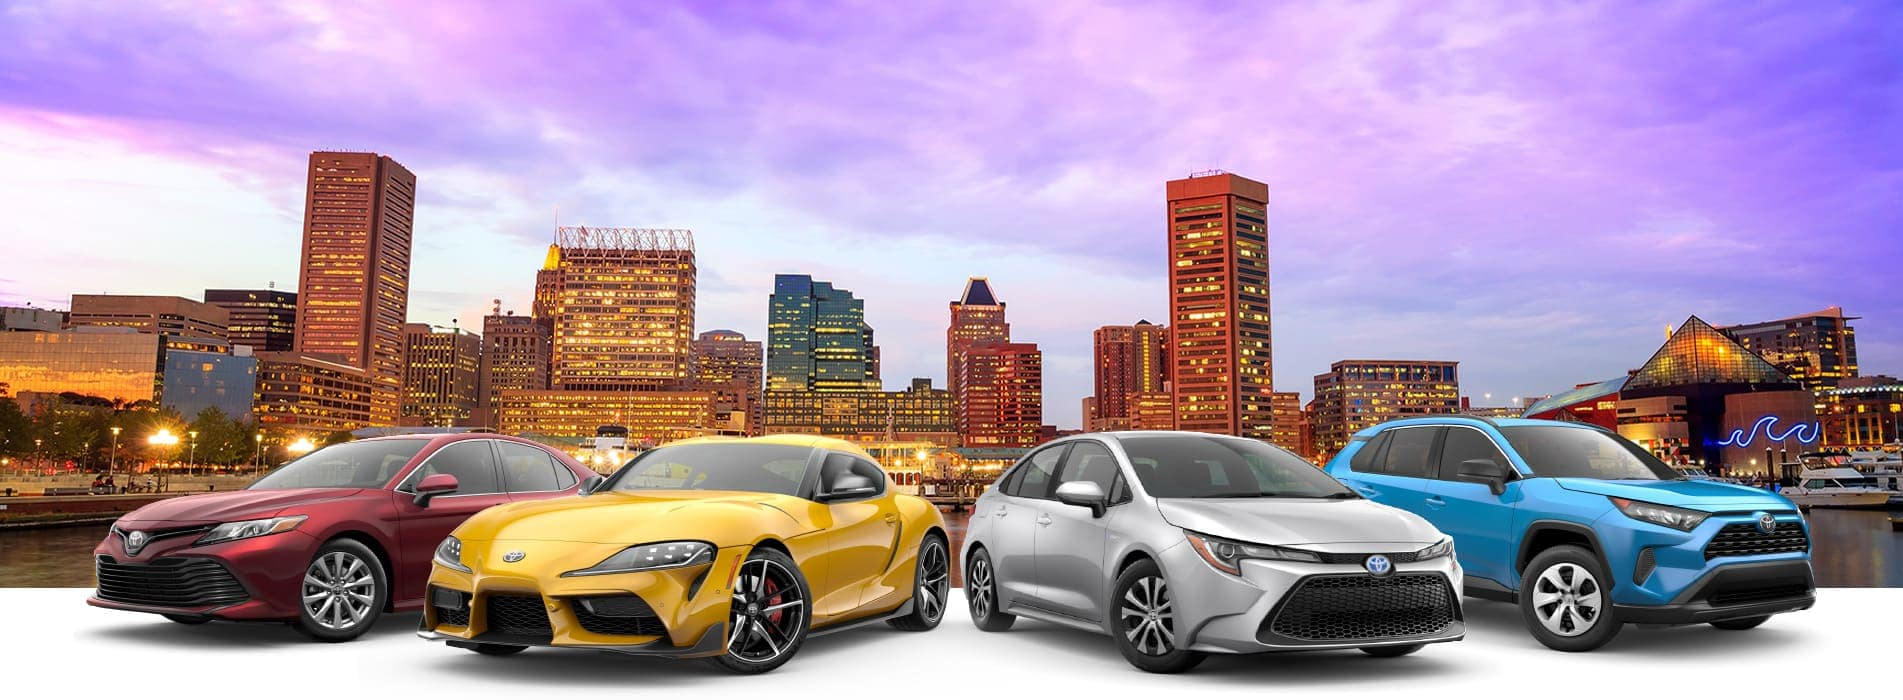 Toyota vehicle line-up against a background with the Baltimore skyline